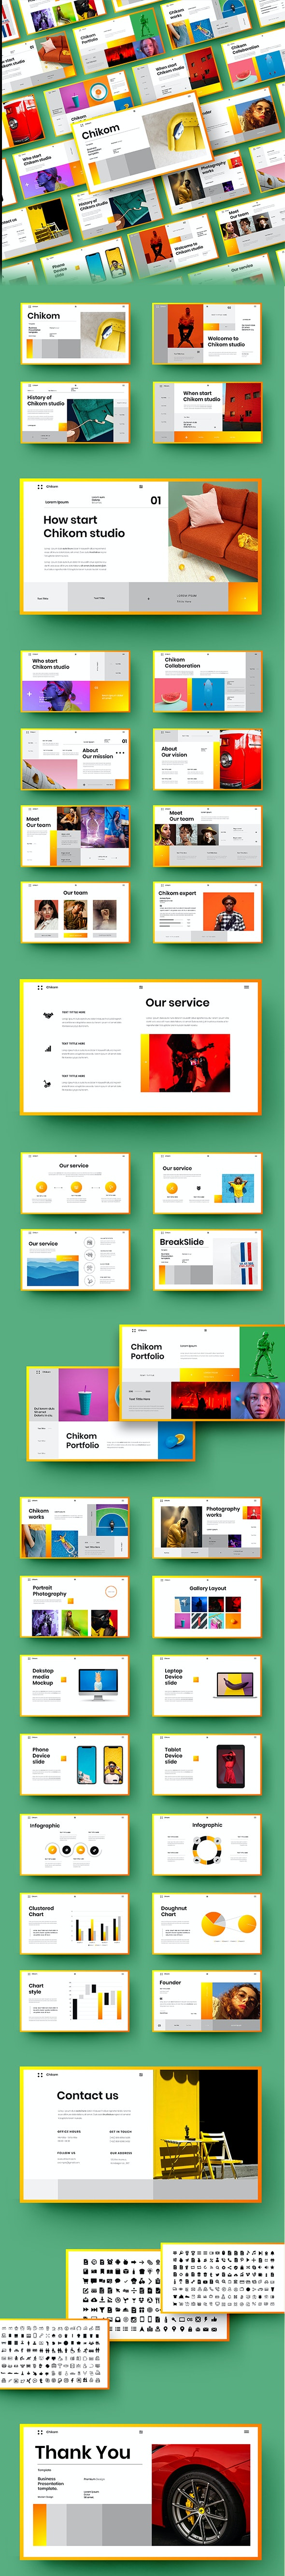 Chikom – Business PowerPoint Template - Business PowerPoint Templates